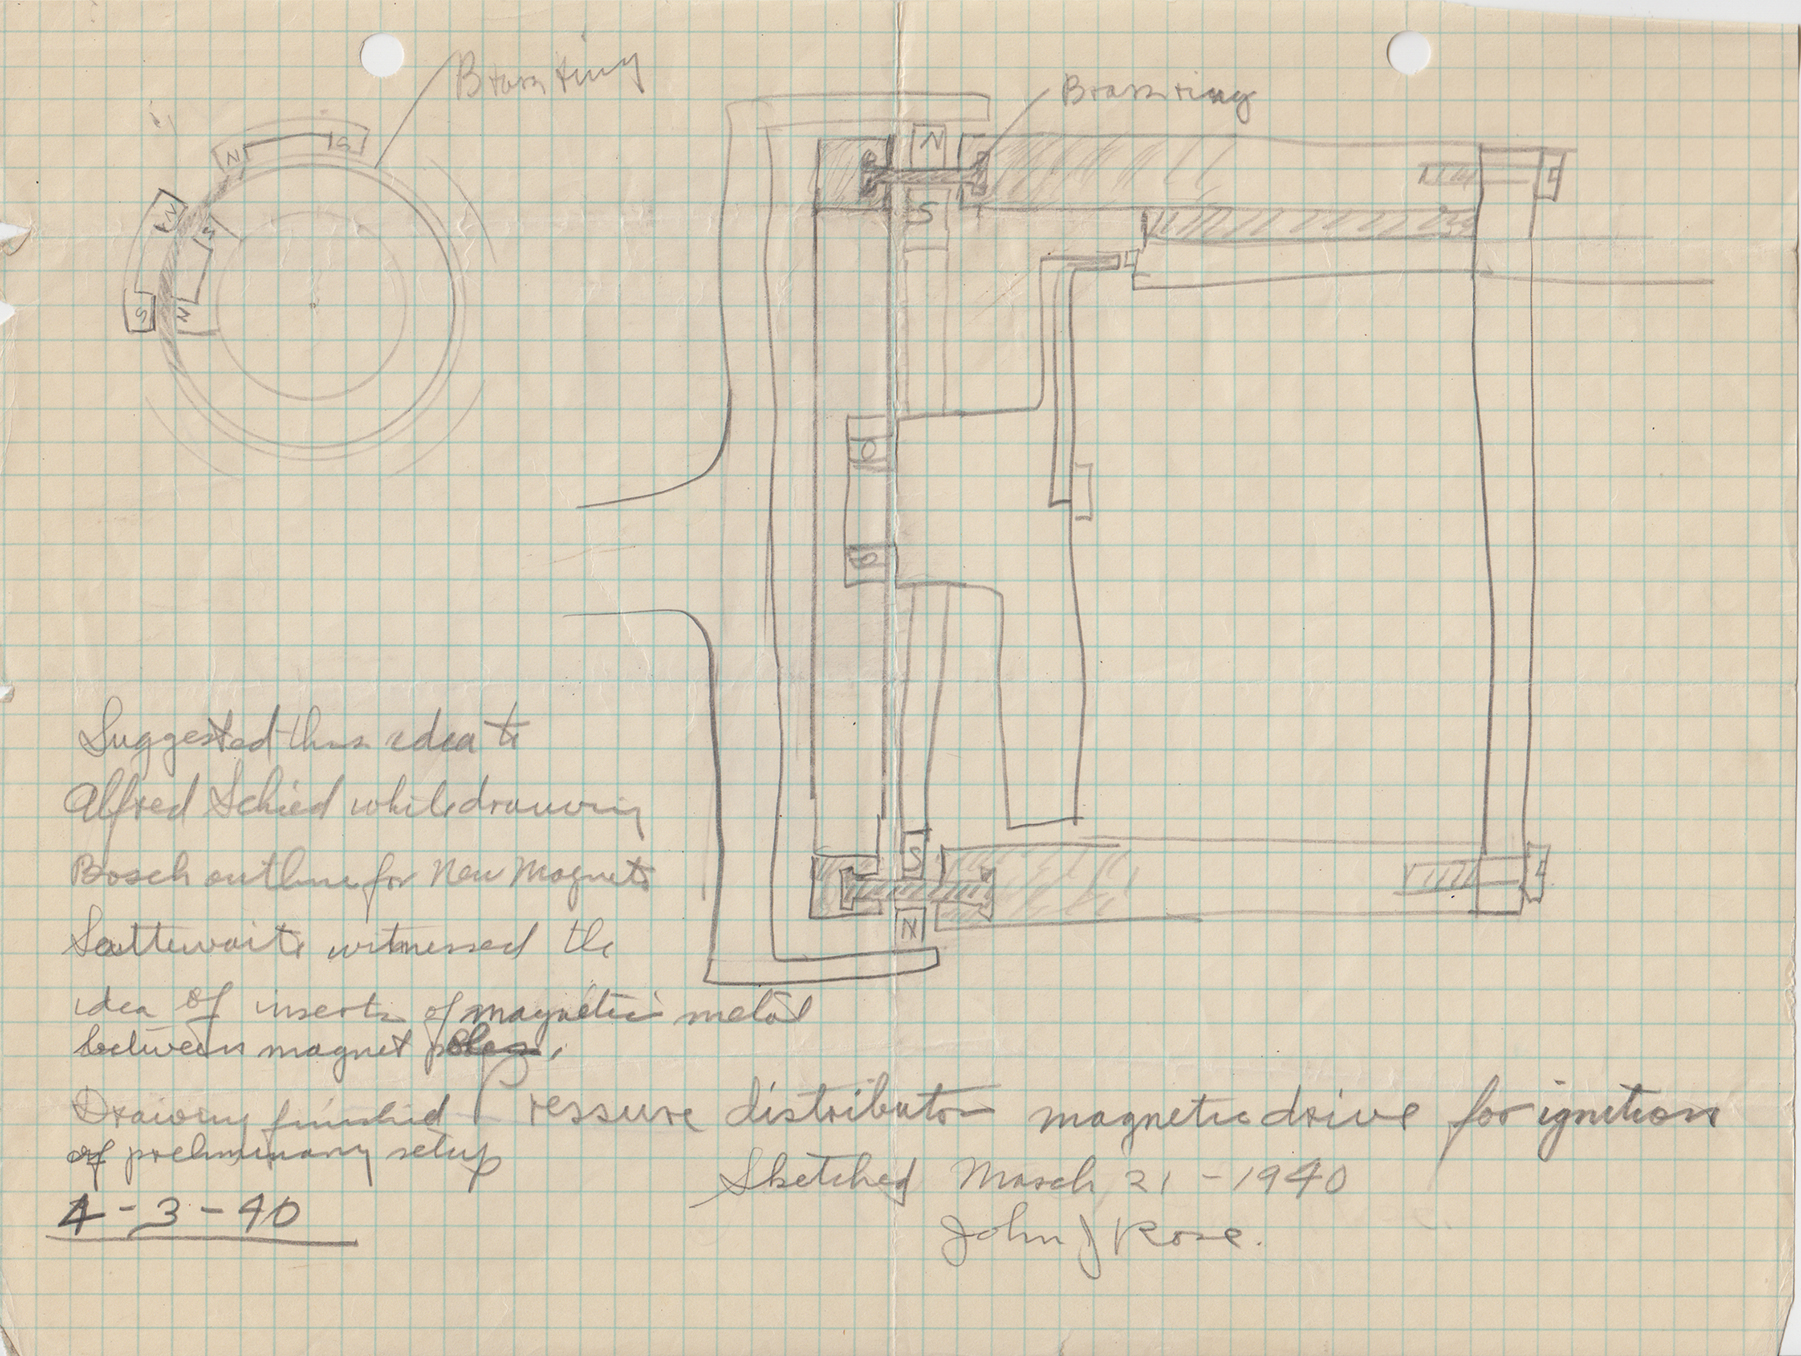 Sketch diagram showing ignition distributor improvements, 1940. (ms178_B2F12)